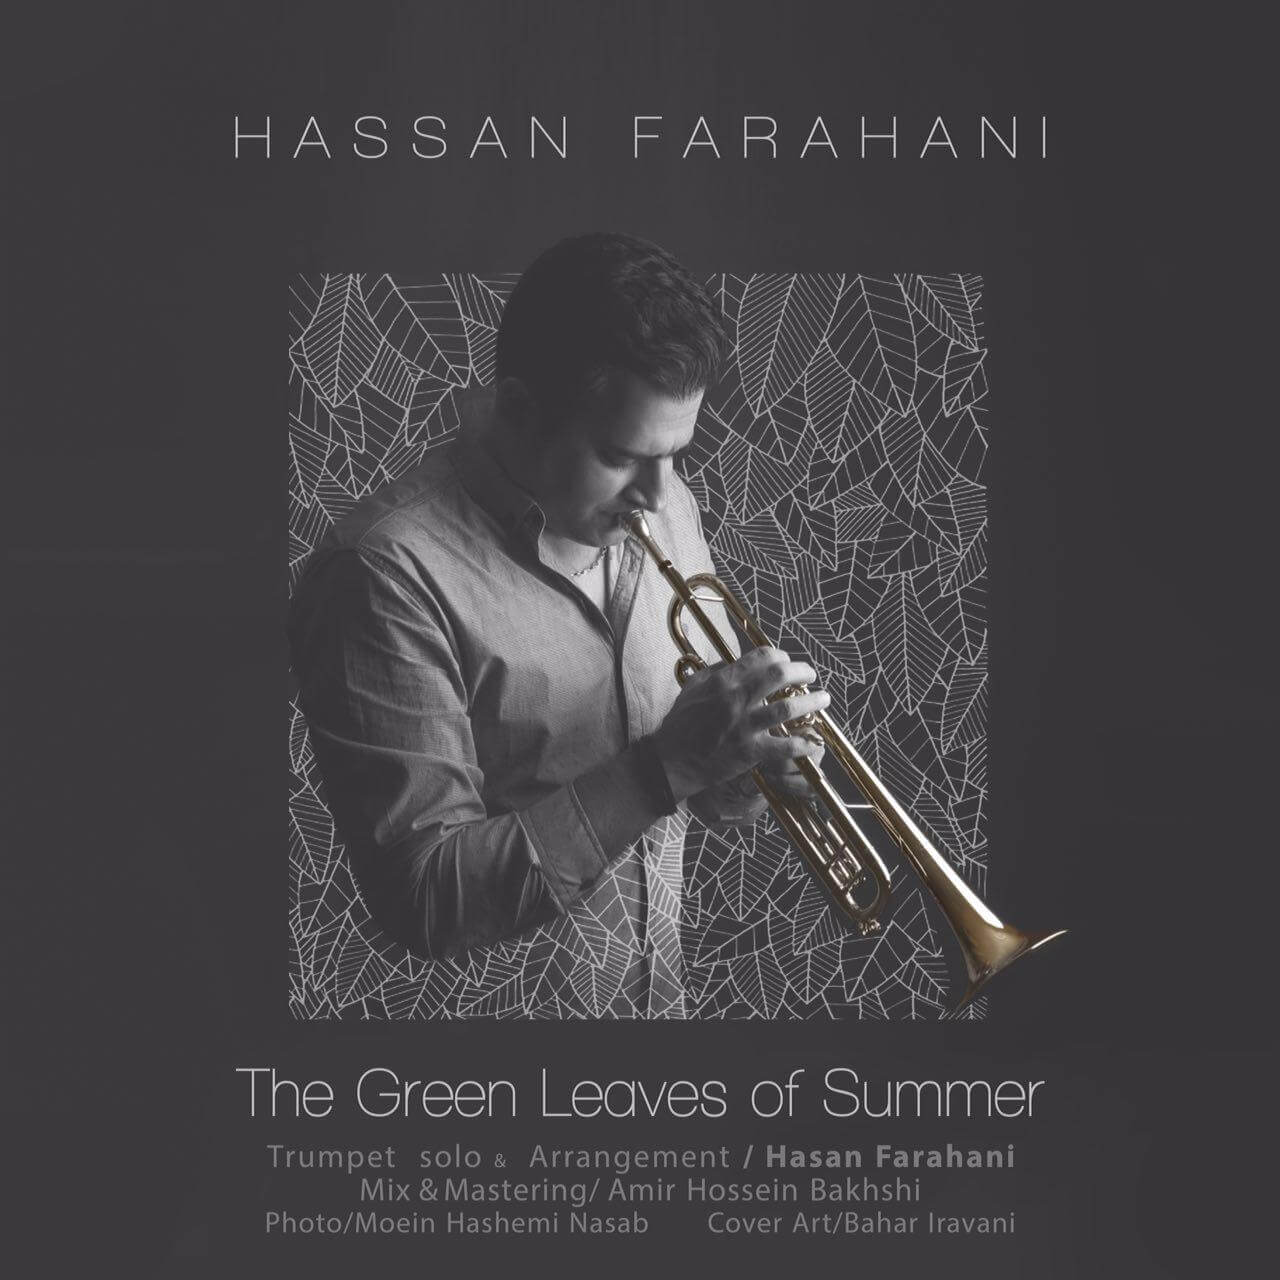 hassan-farahani-the-green-leaves-of-summer